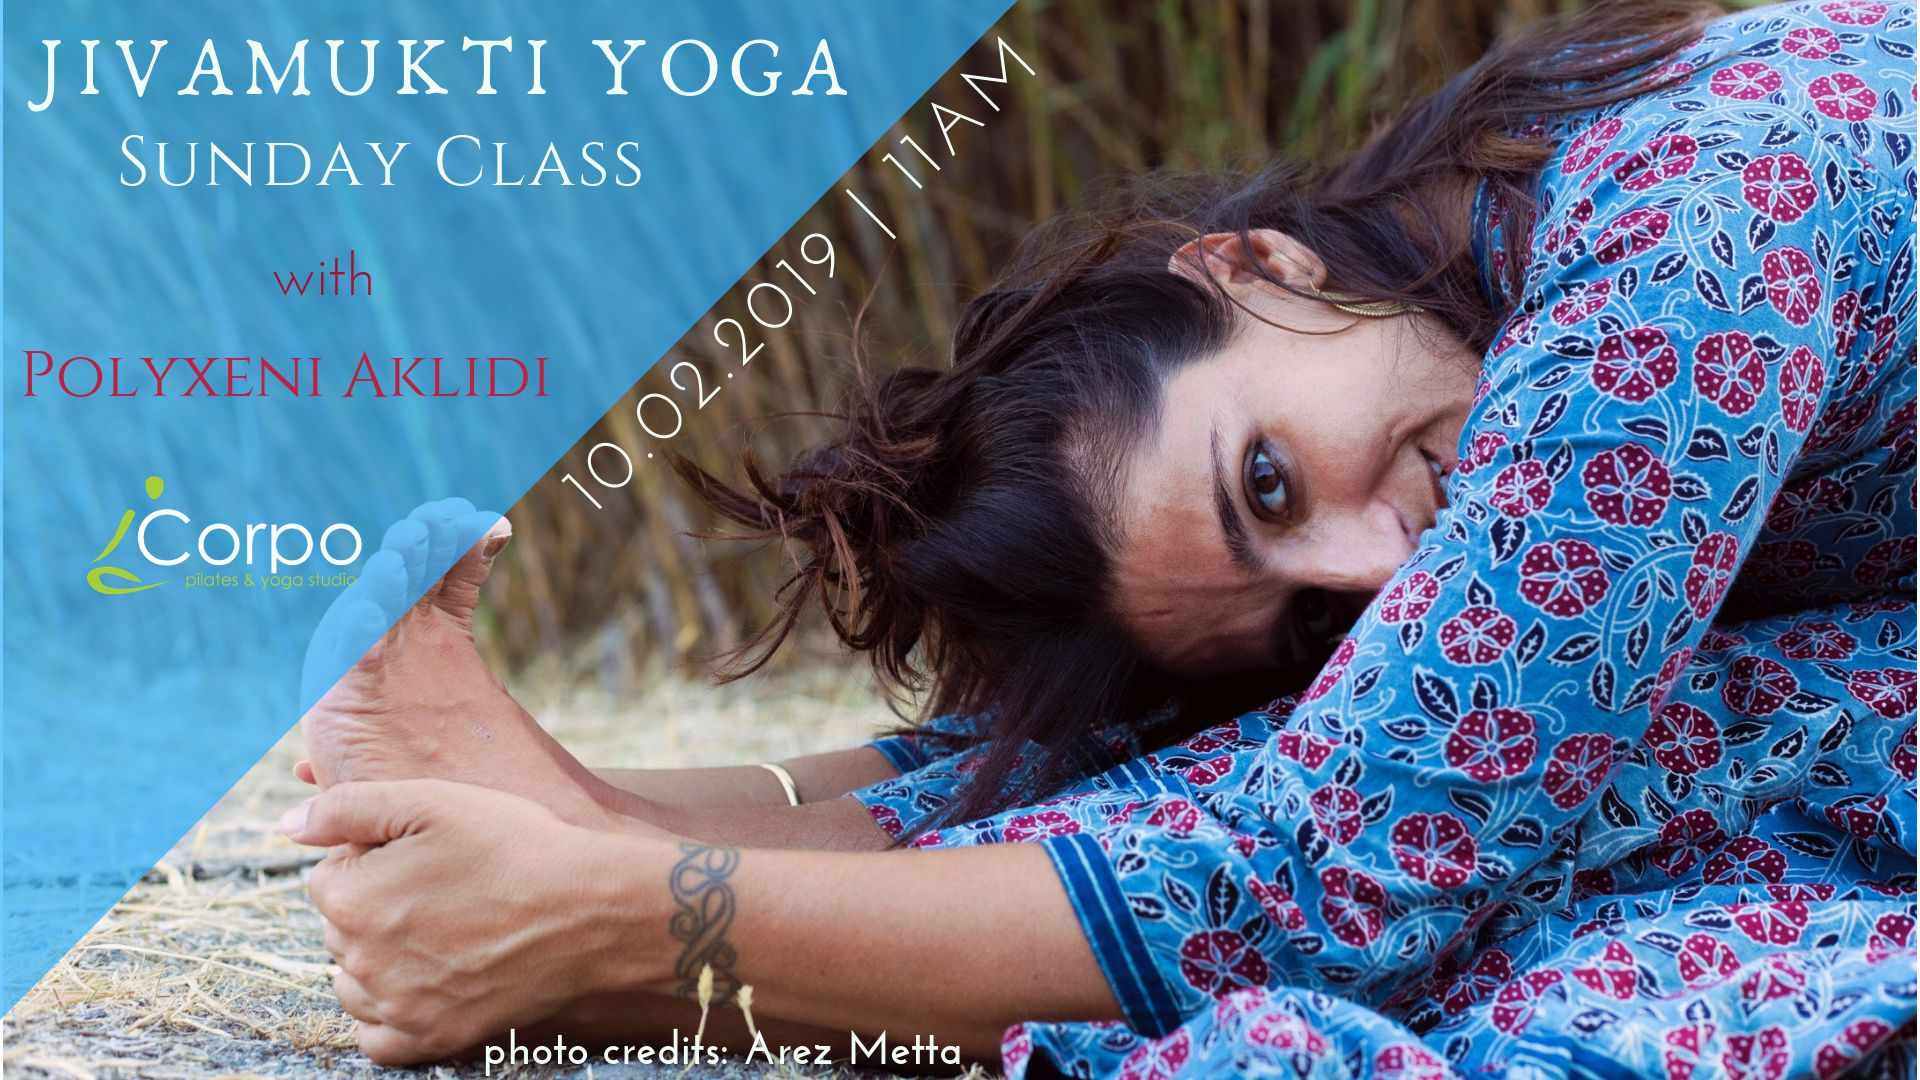 Jivamukti Yoga Sunday Class with Polyxeni Aklidi 10th of February